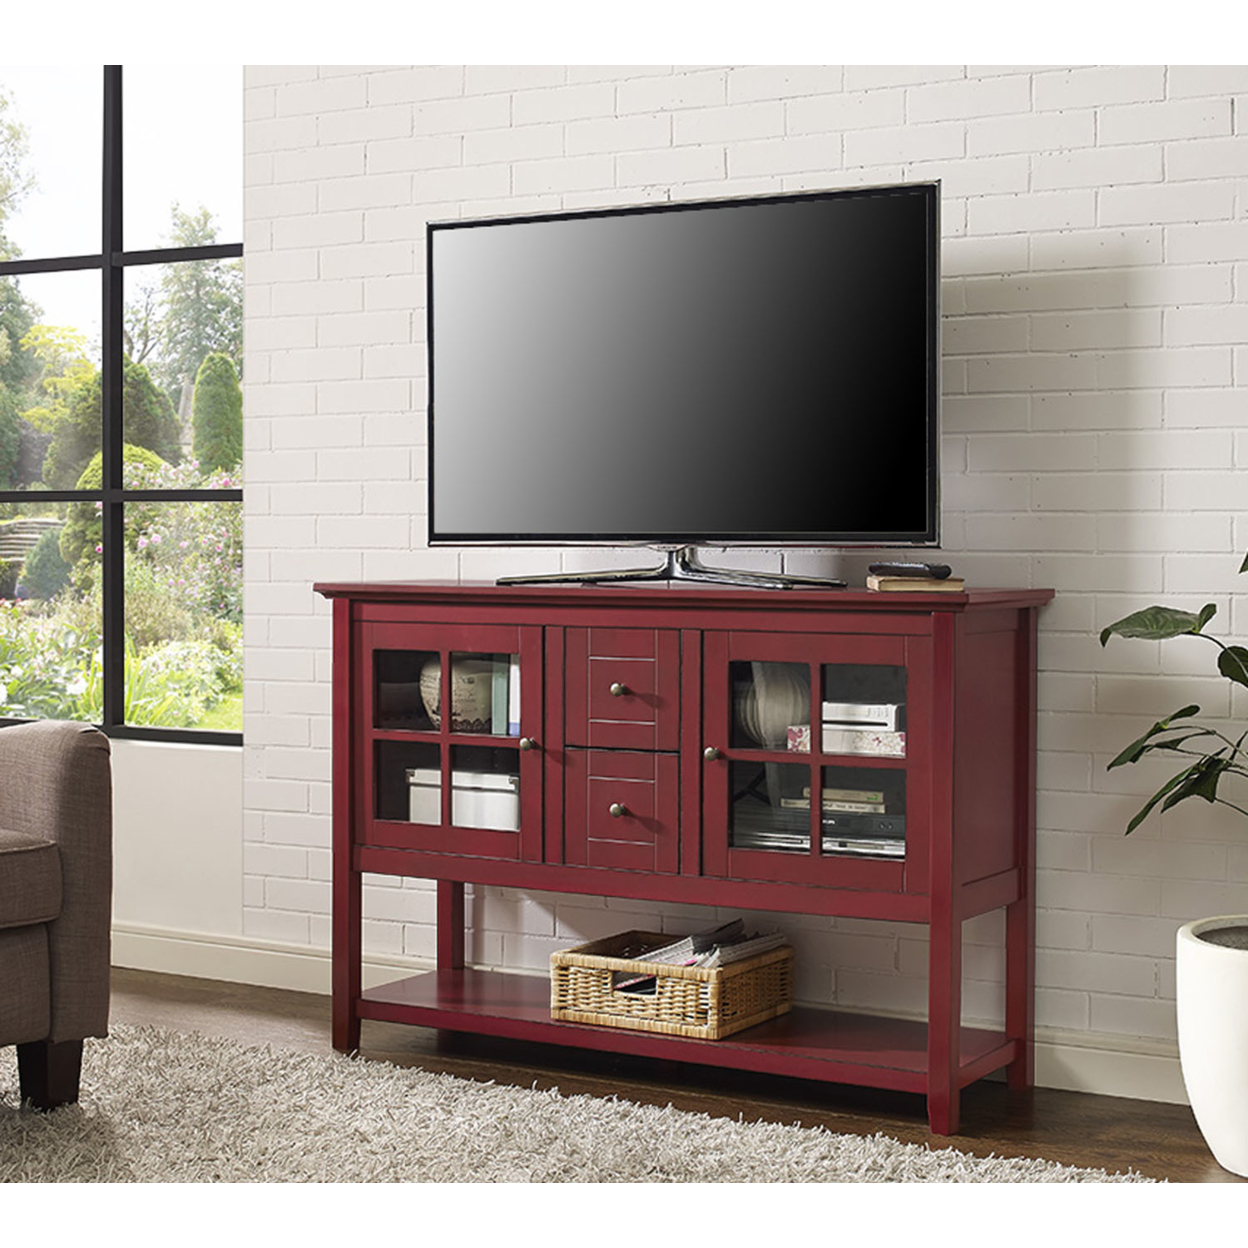 ... WE Furniture 52 Wood Console Table TV Stand   Antique Red (3)